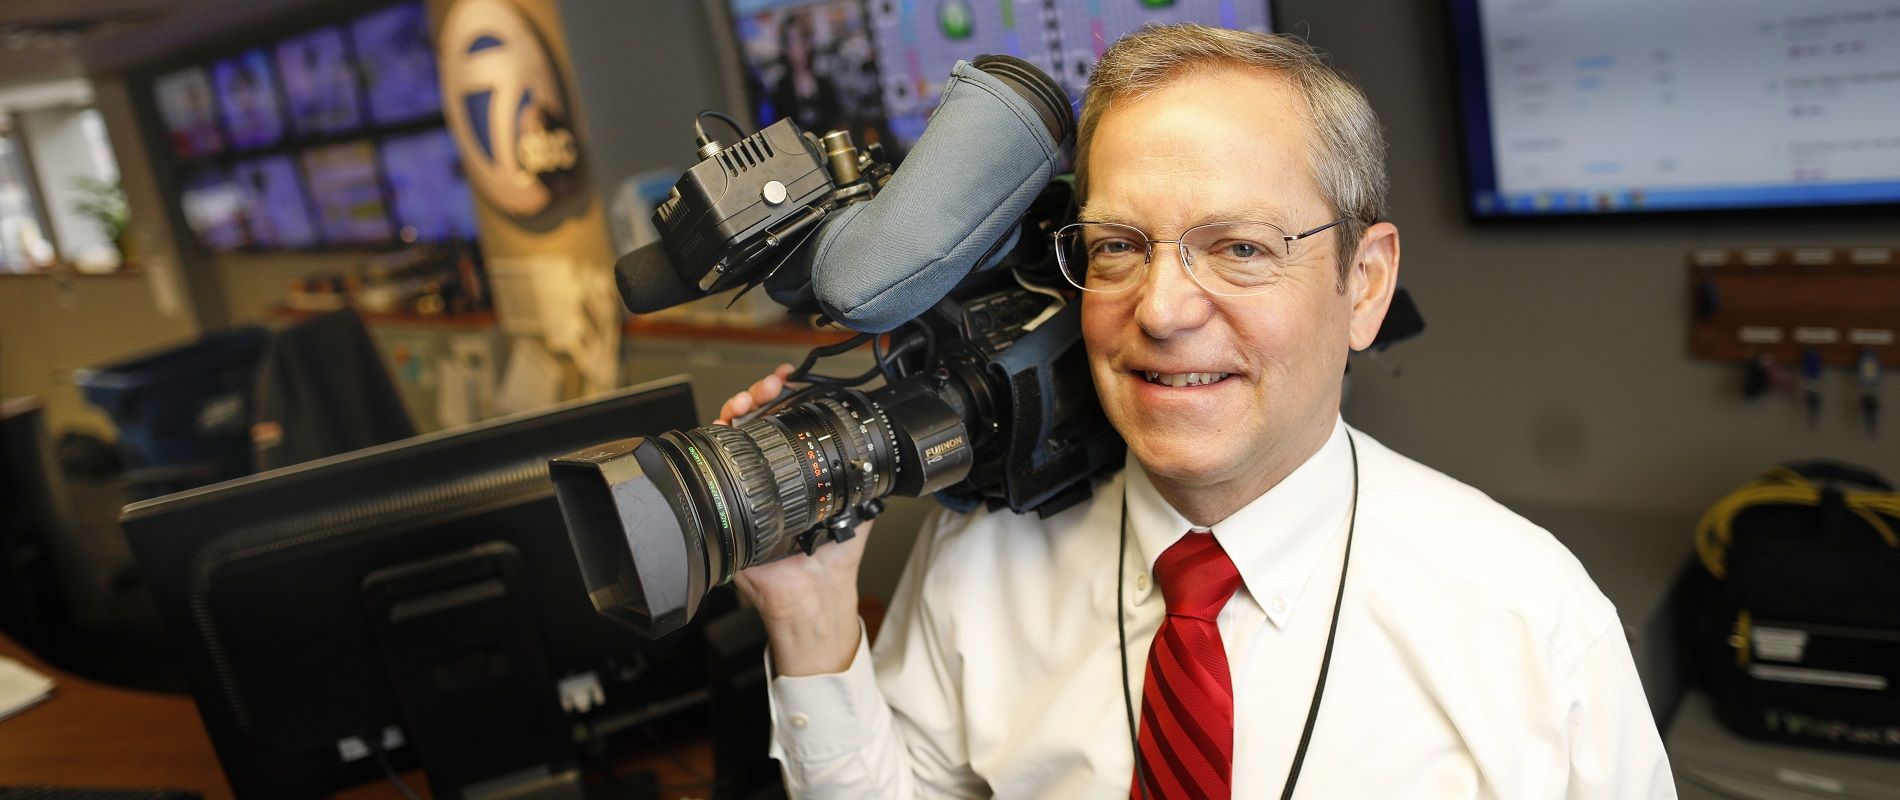 Channel 7's Ed Reilly has gone from working behind a camera in anonymity to a reporter who is stopped when he is out at department stores and restaurants. (Derek Gee/Buffalo News)